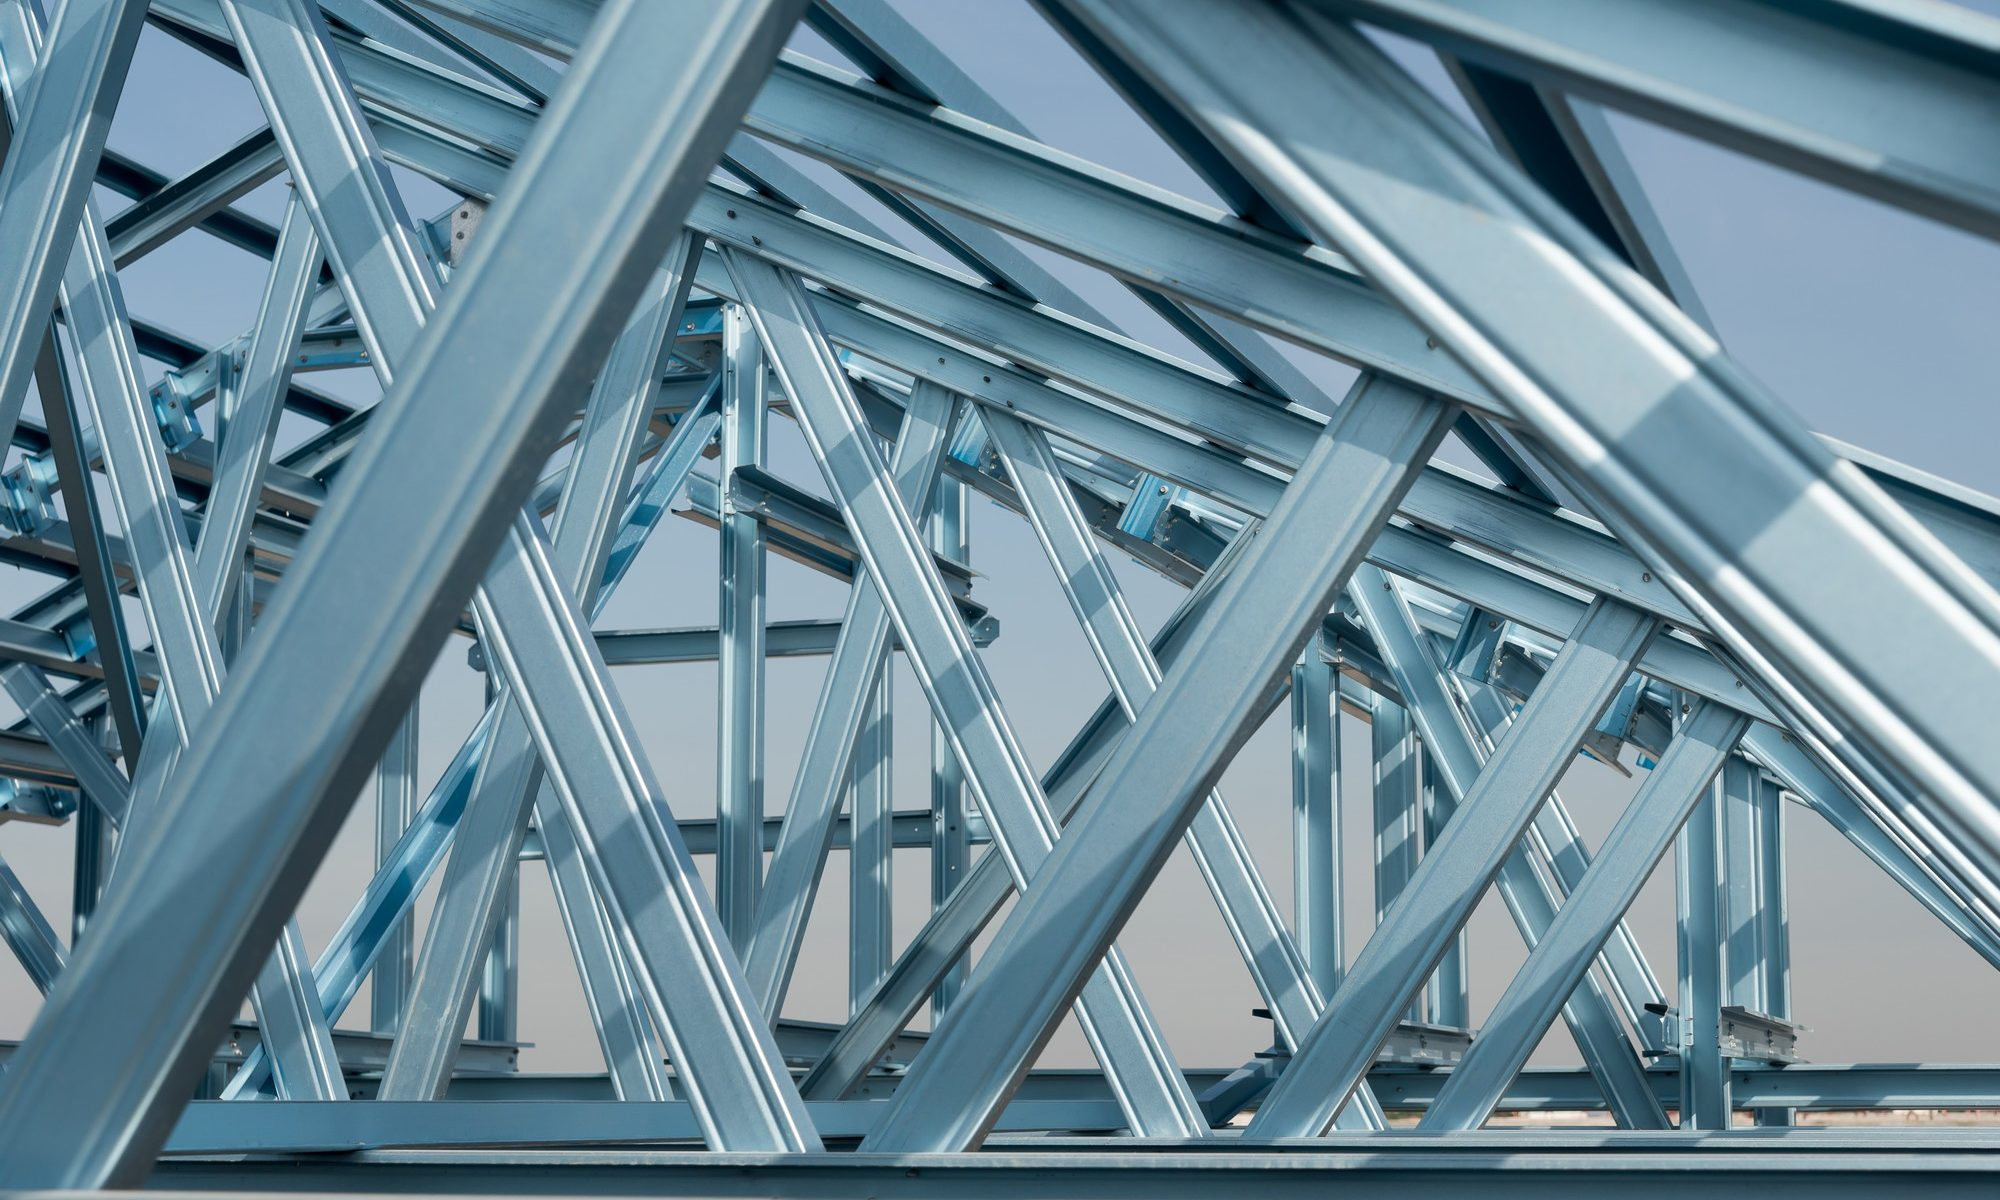 STRUCTURAL ANALYSIS AND DESIGN SOFTWARE SOLUTIONS